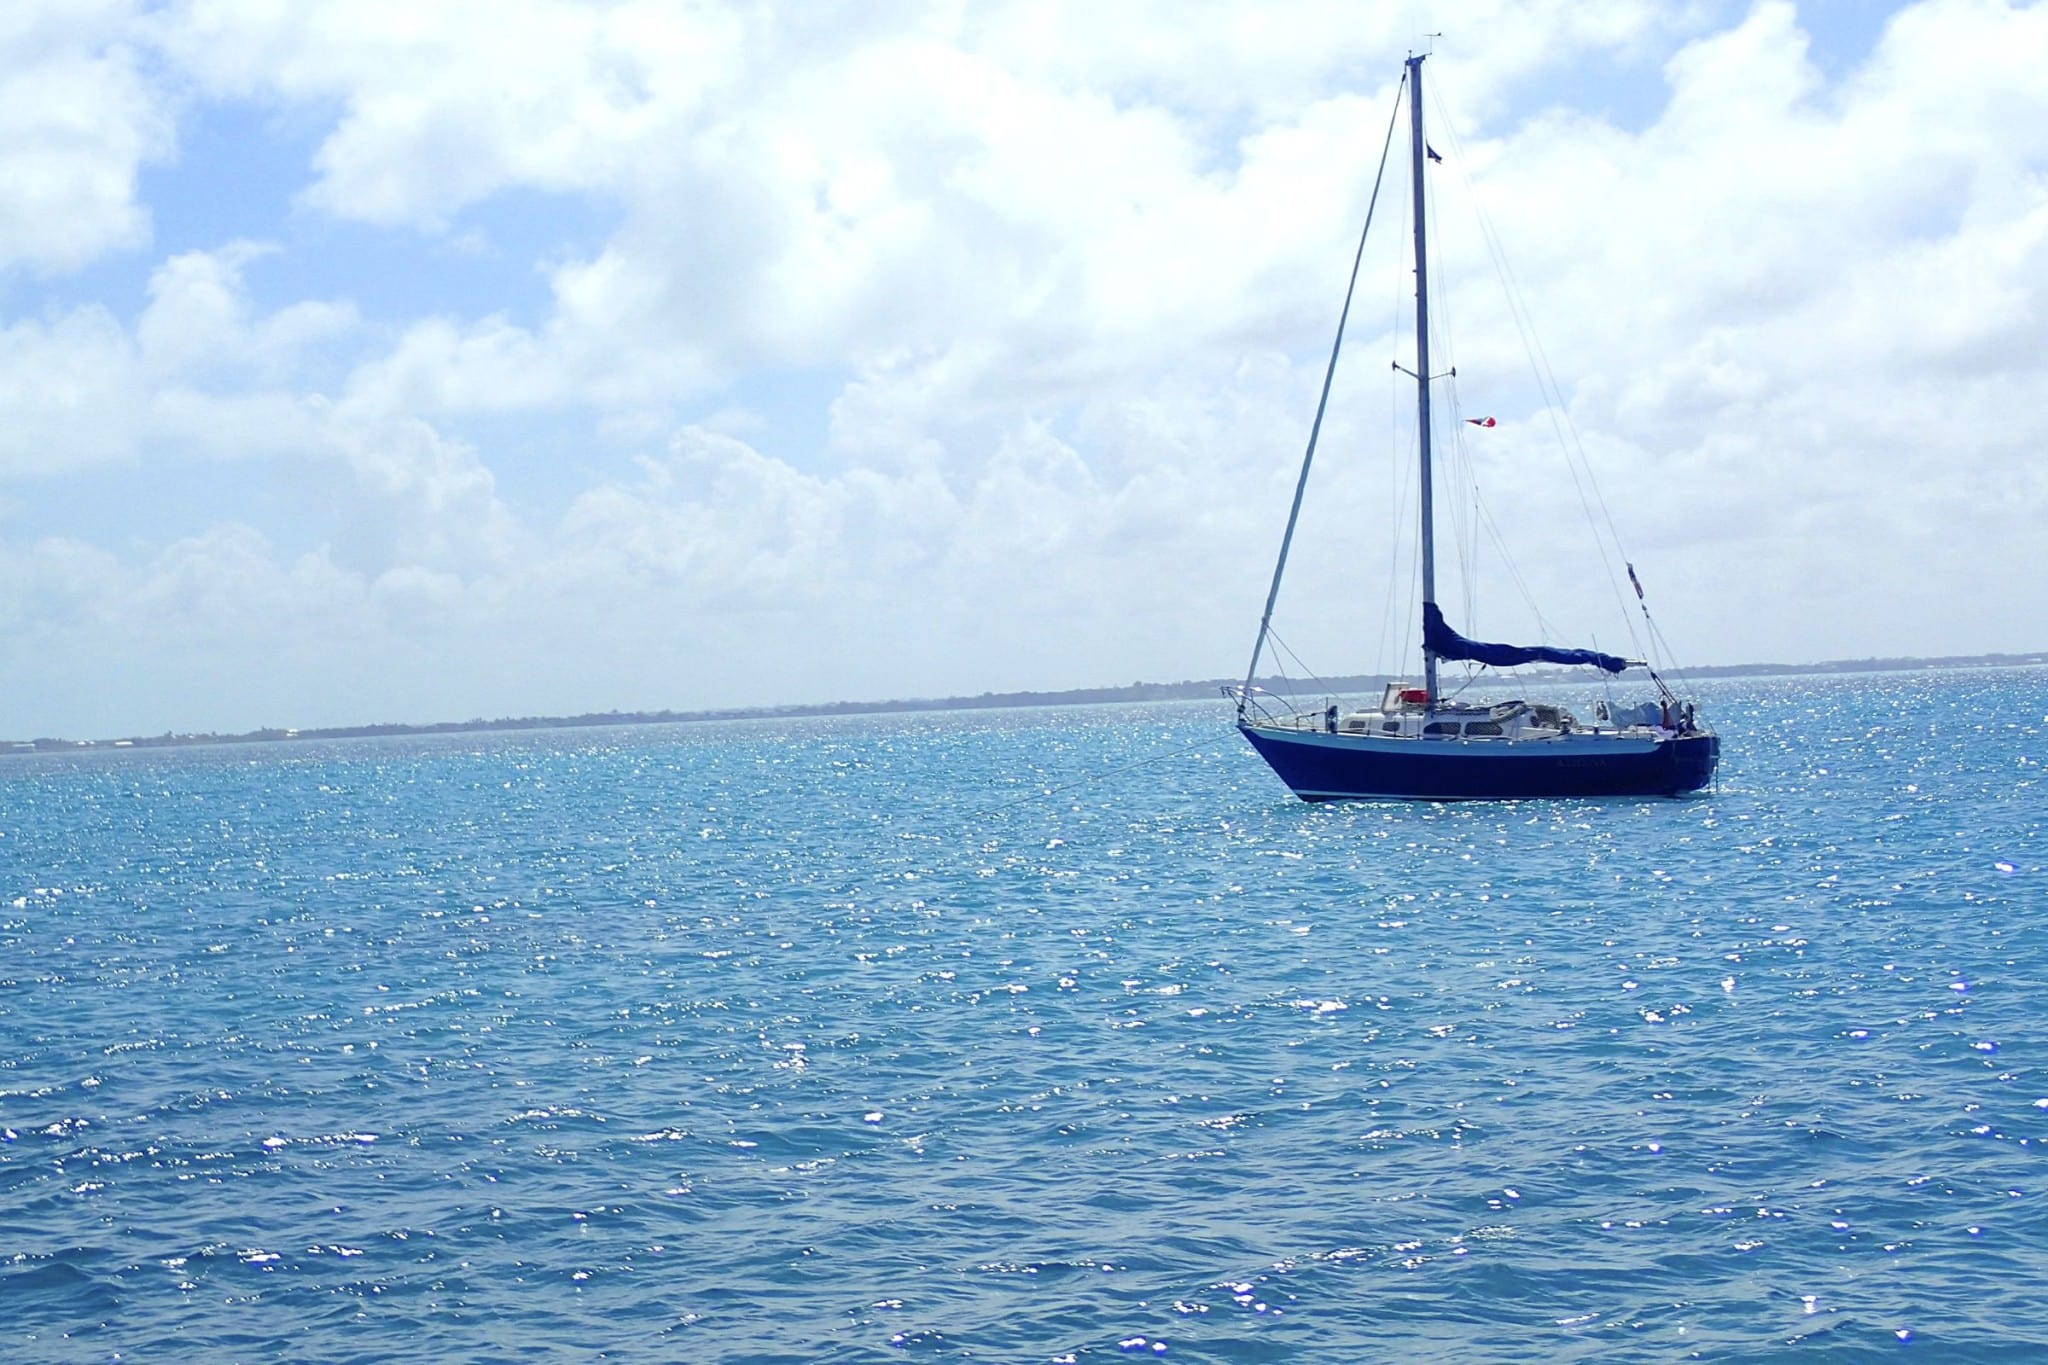 Anchored in the Calm Sea of Abaco, The Bahamas